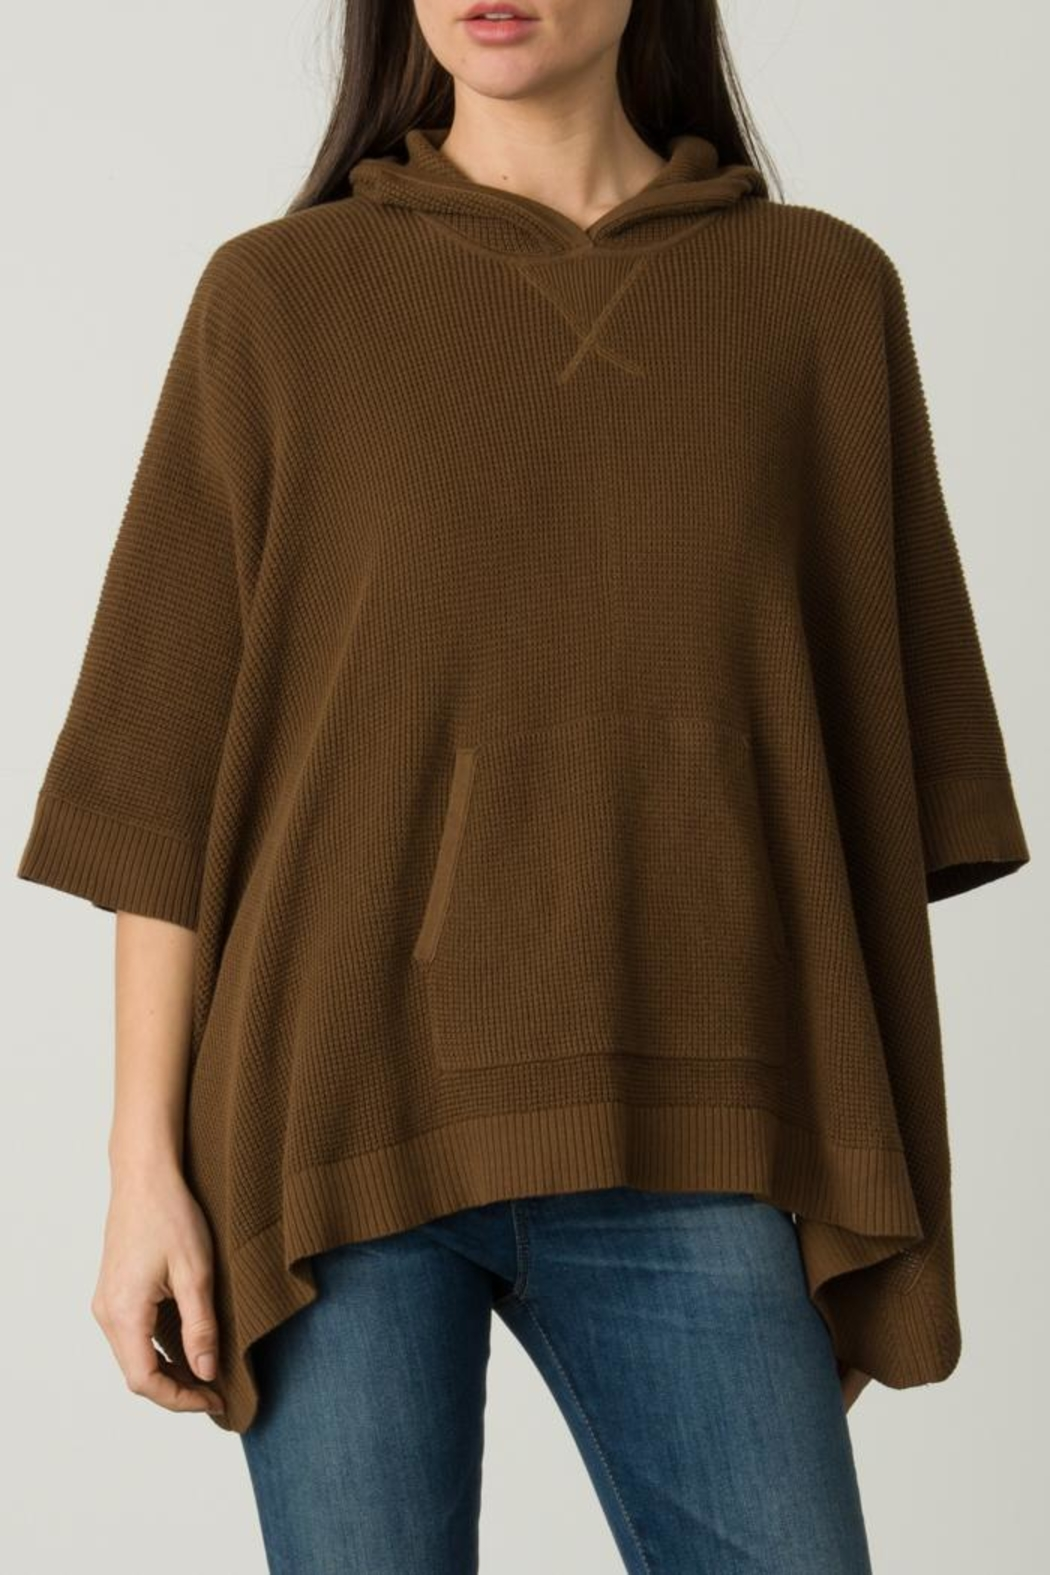 Margaret O'Leary Thermal Poncho - Front Full Image